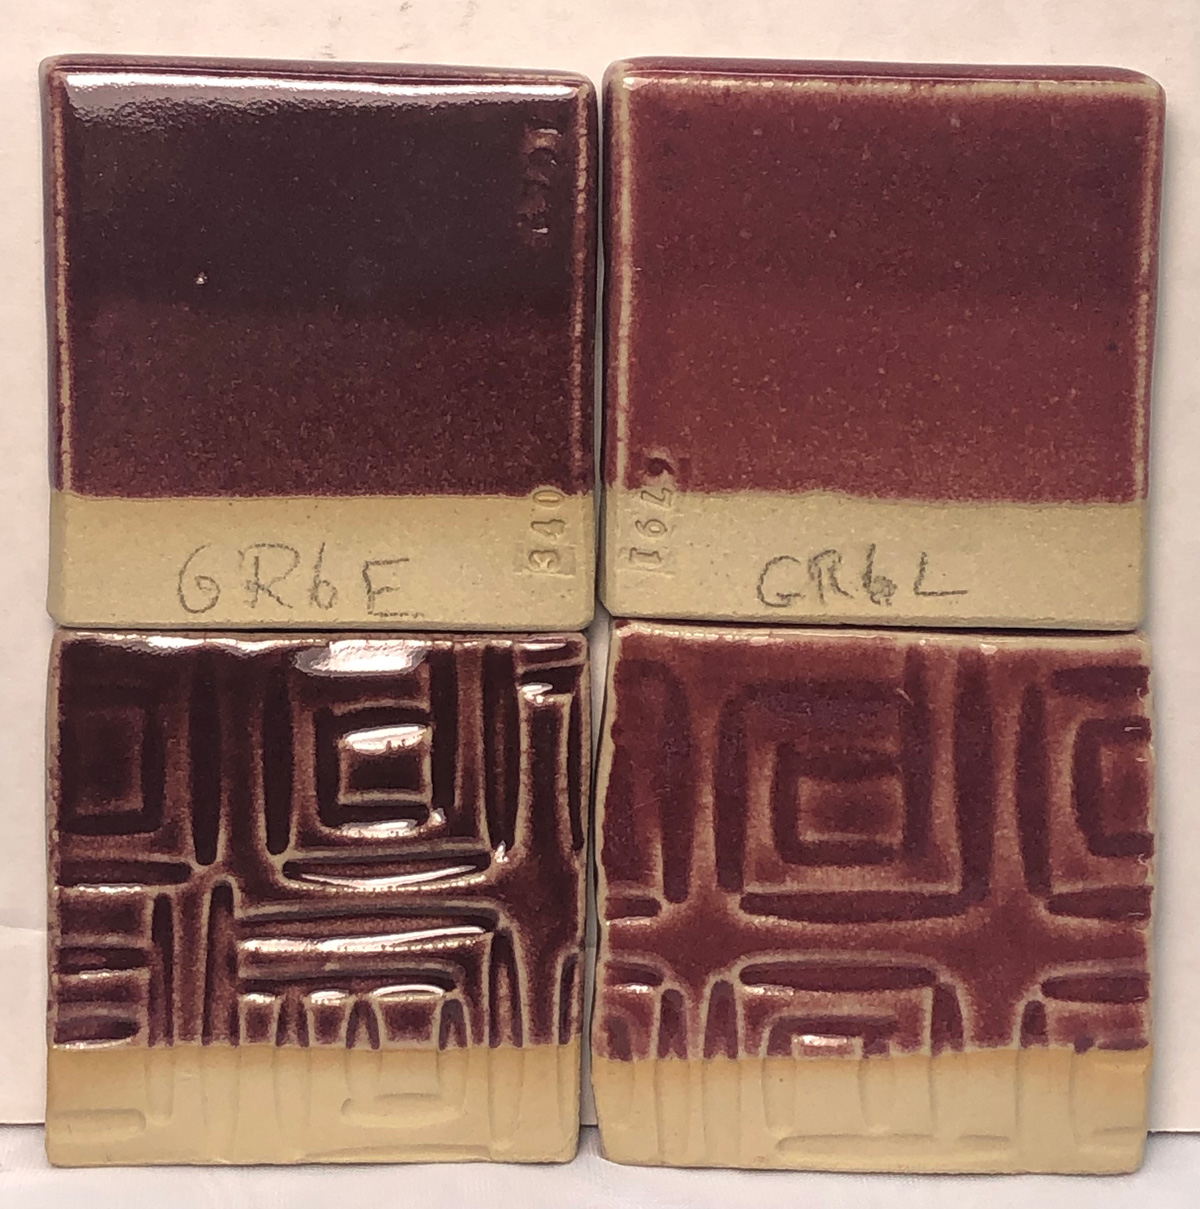 GR6-E and GR6-L Ravenscrag Pink glazes side-by-side